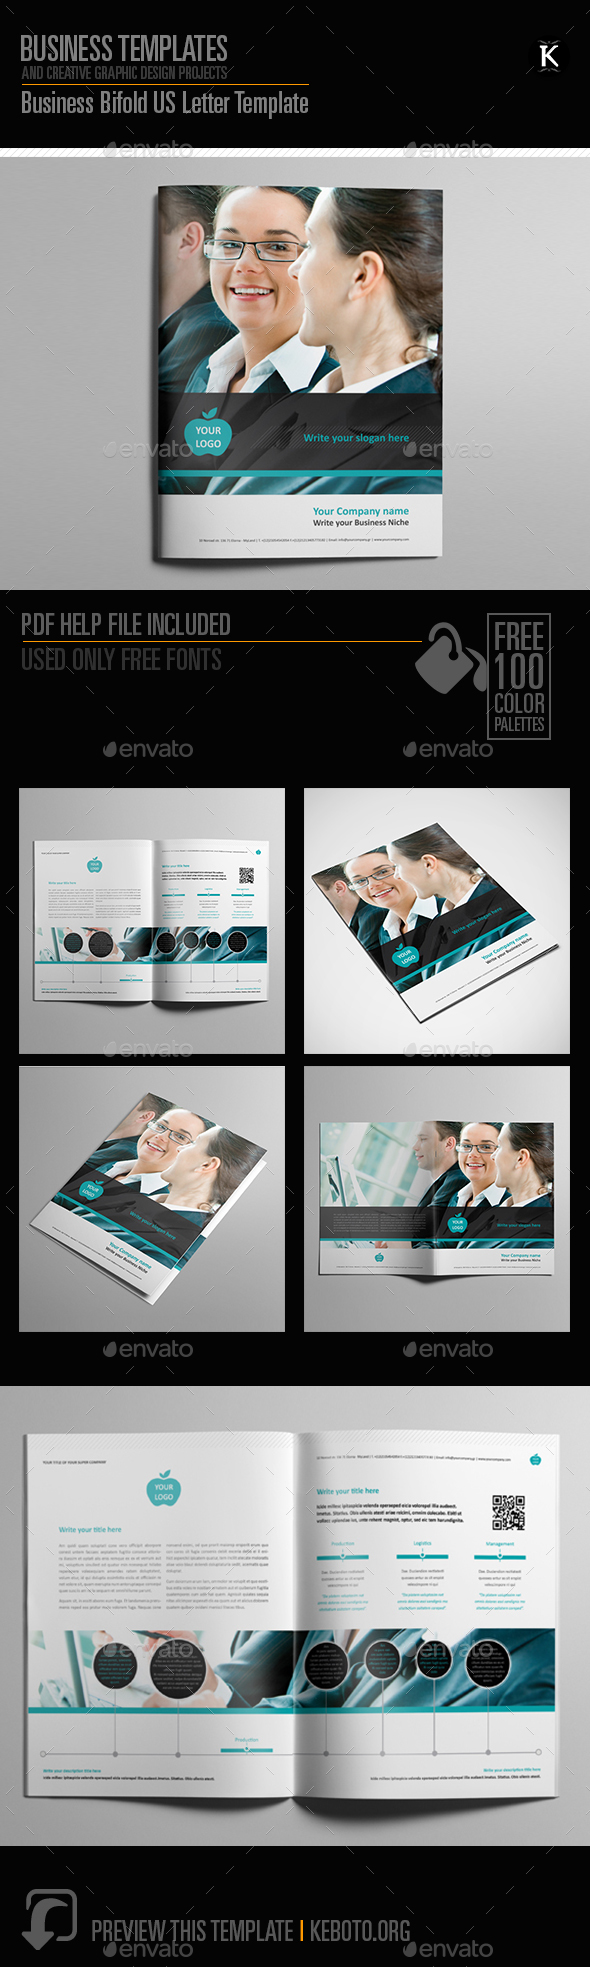 Business Bifold US Letter Template